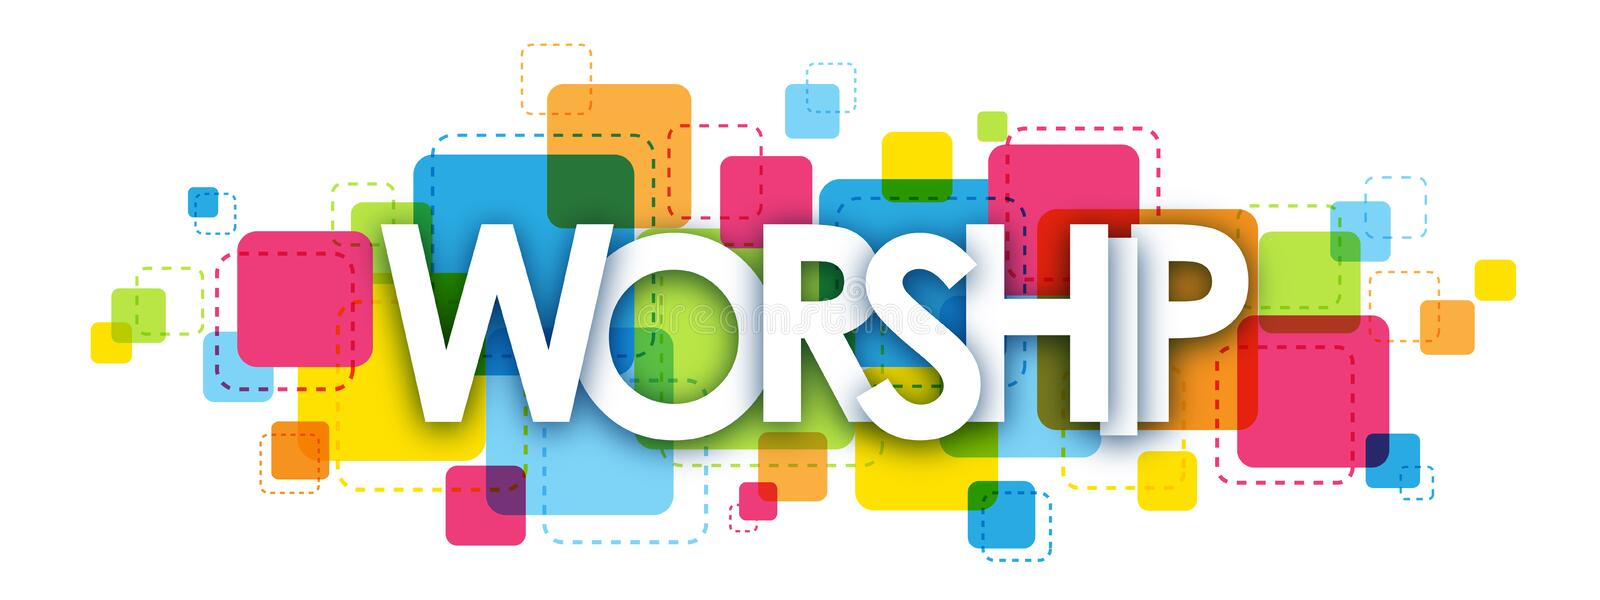 WORSHIP letters banner stock illustration